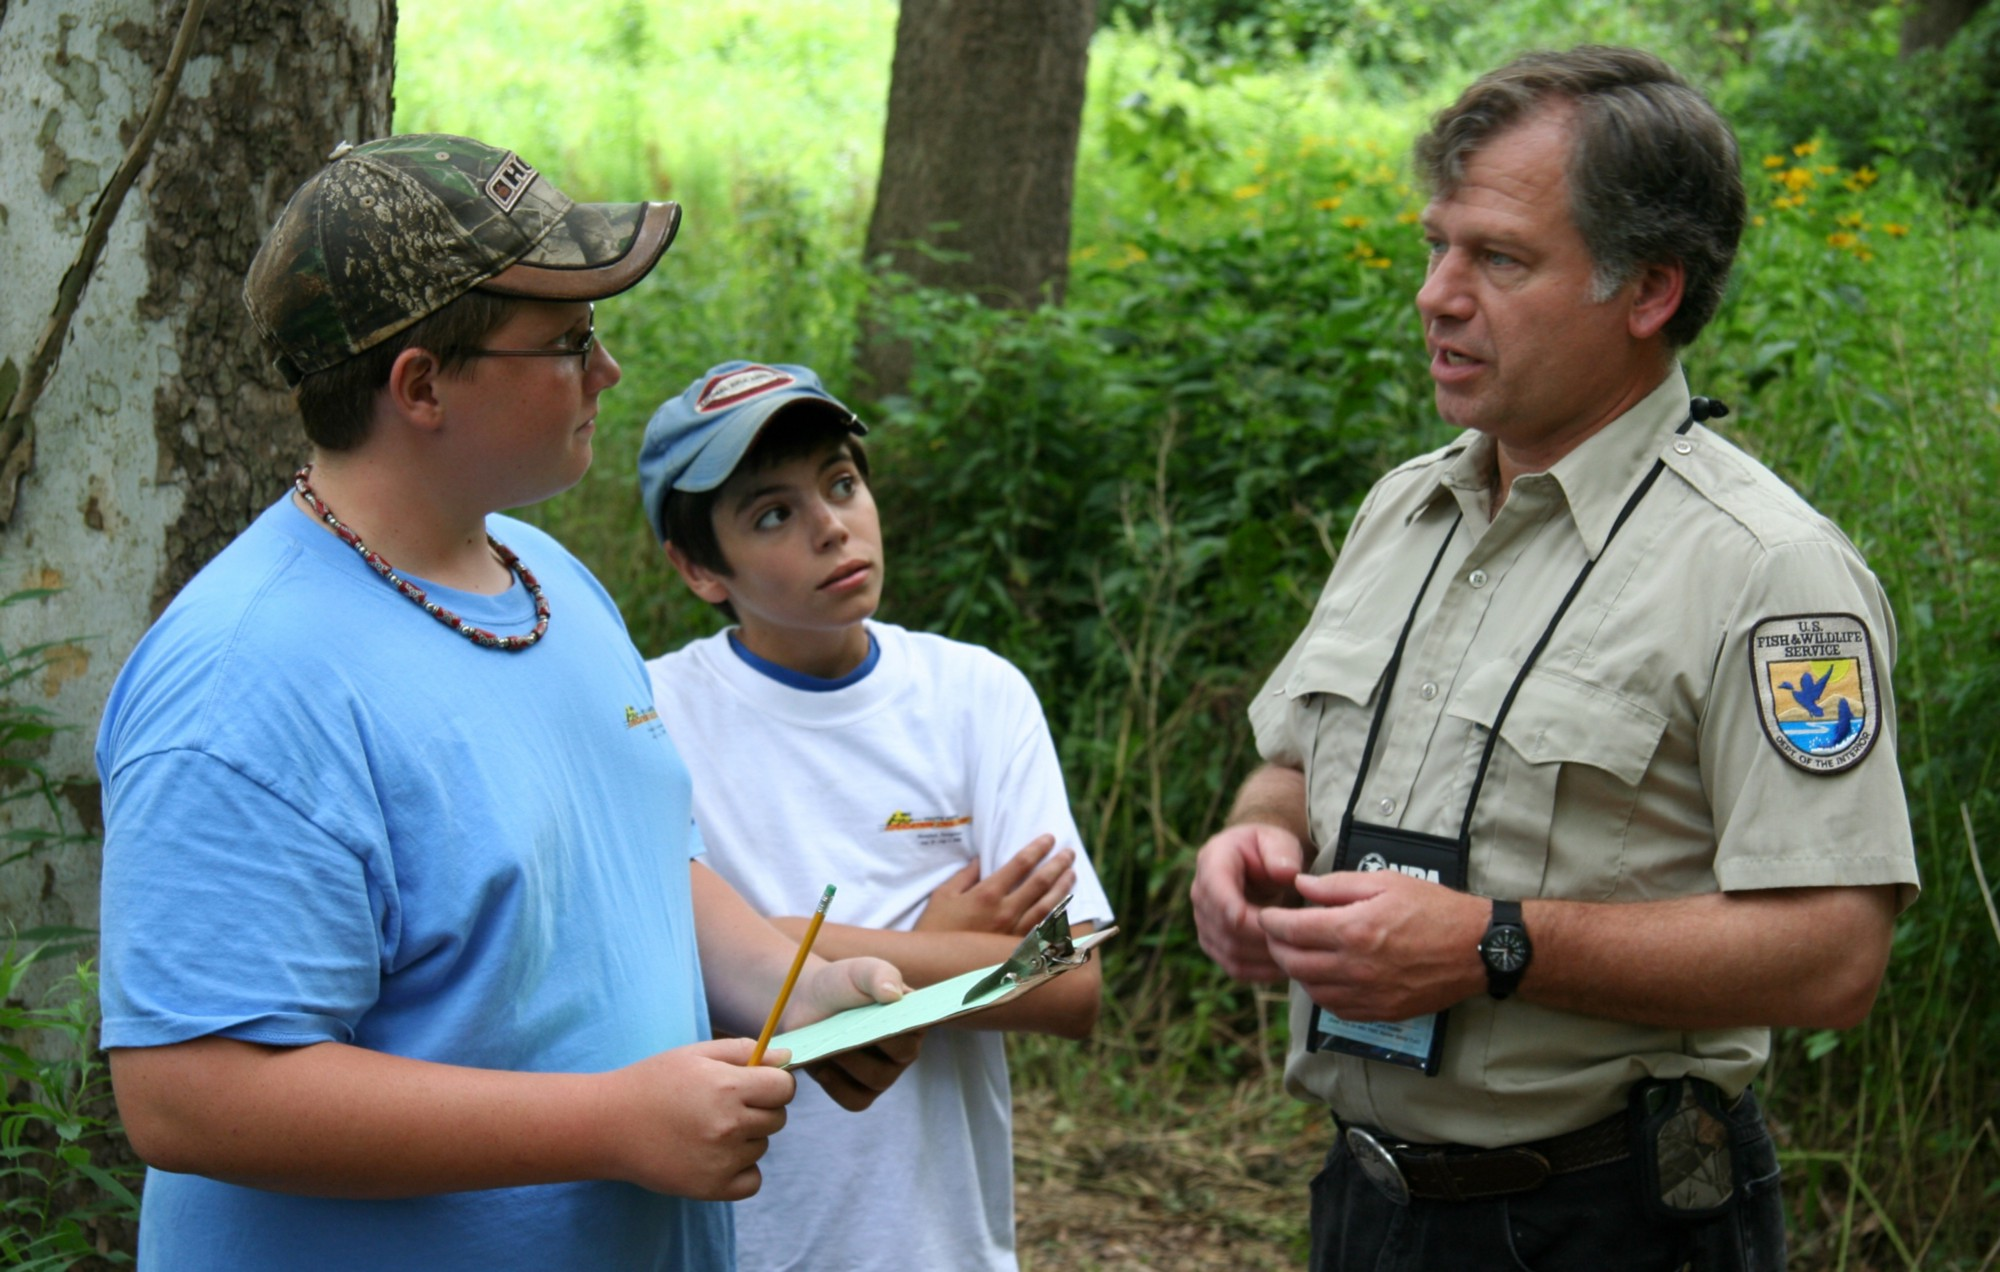 Bill Vogel, a USFWS biologist, speaks to two students about hunting.